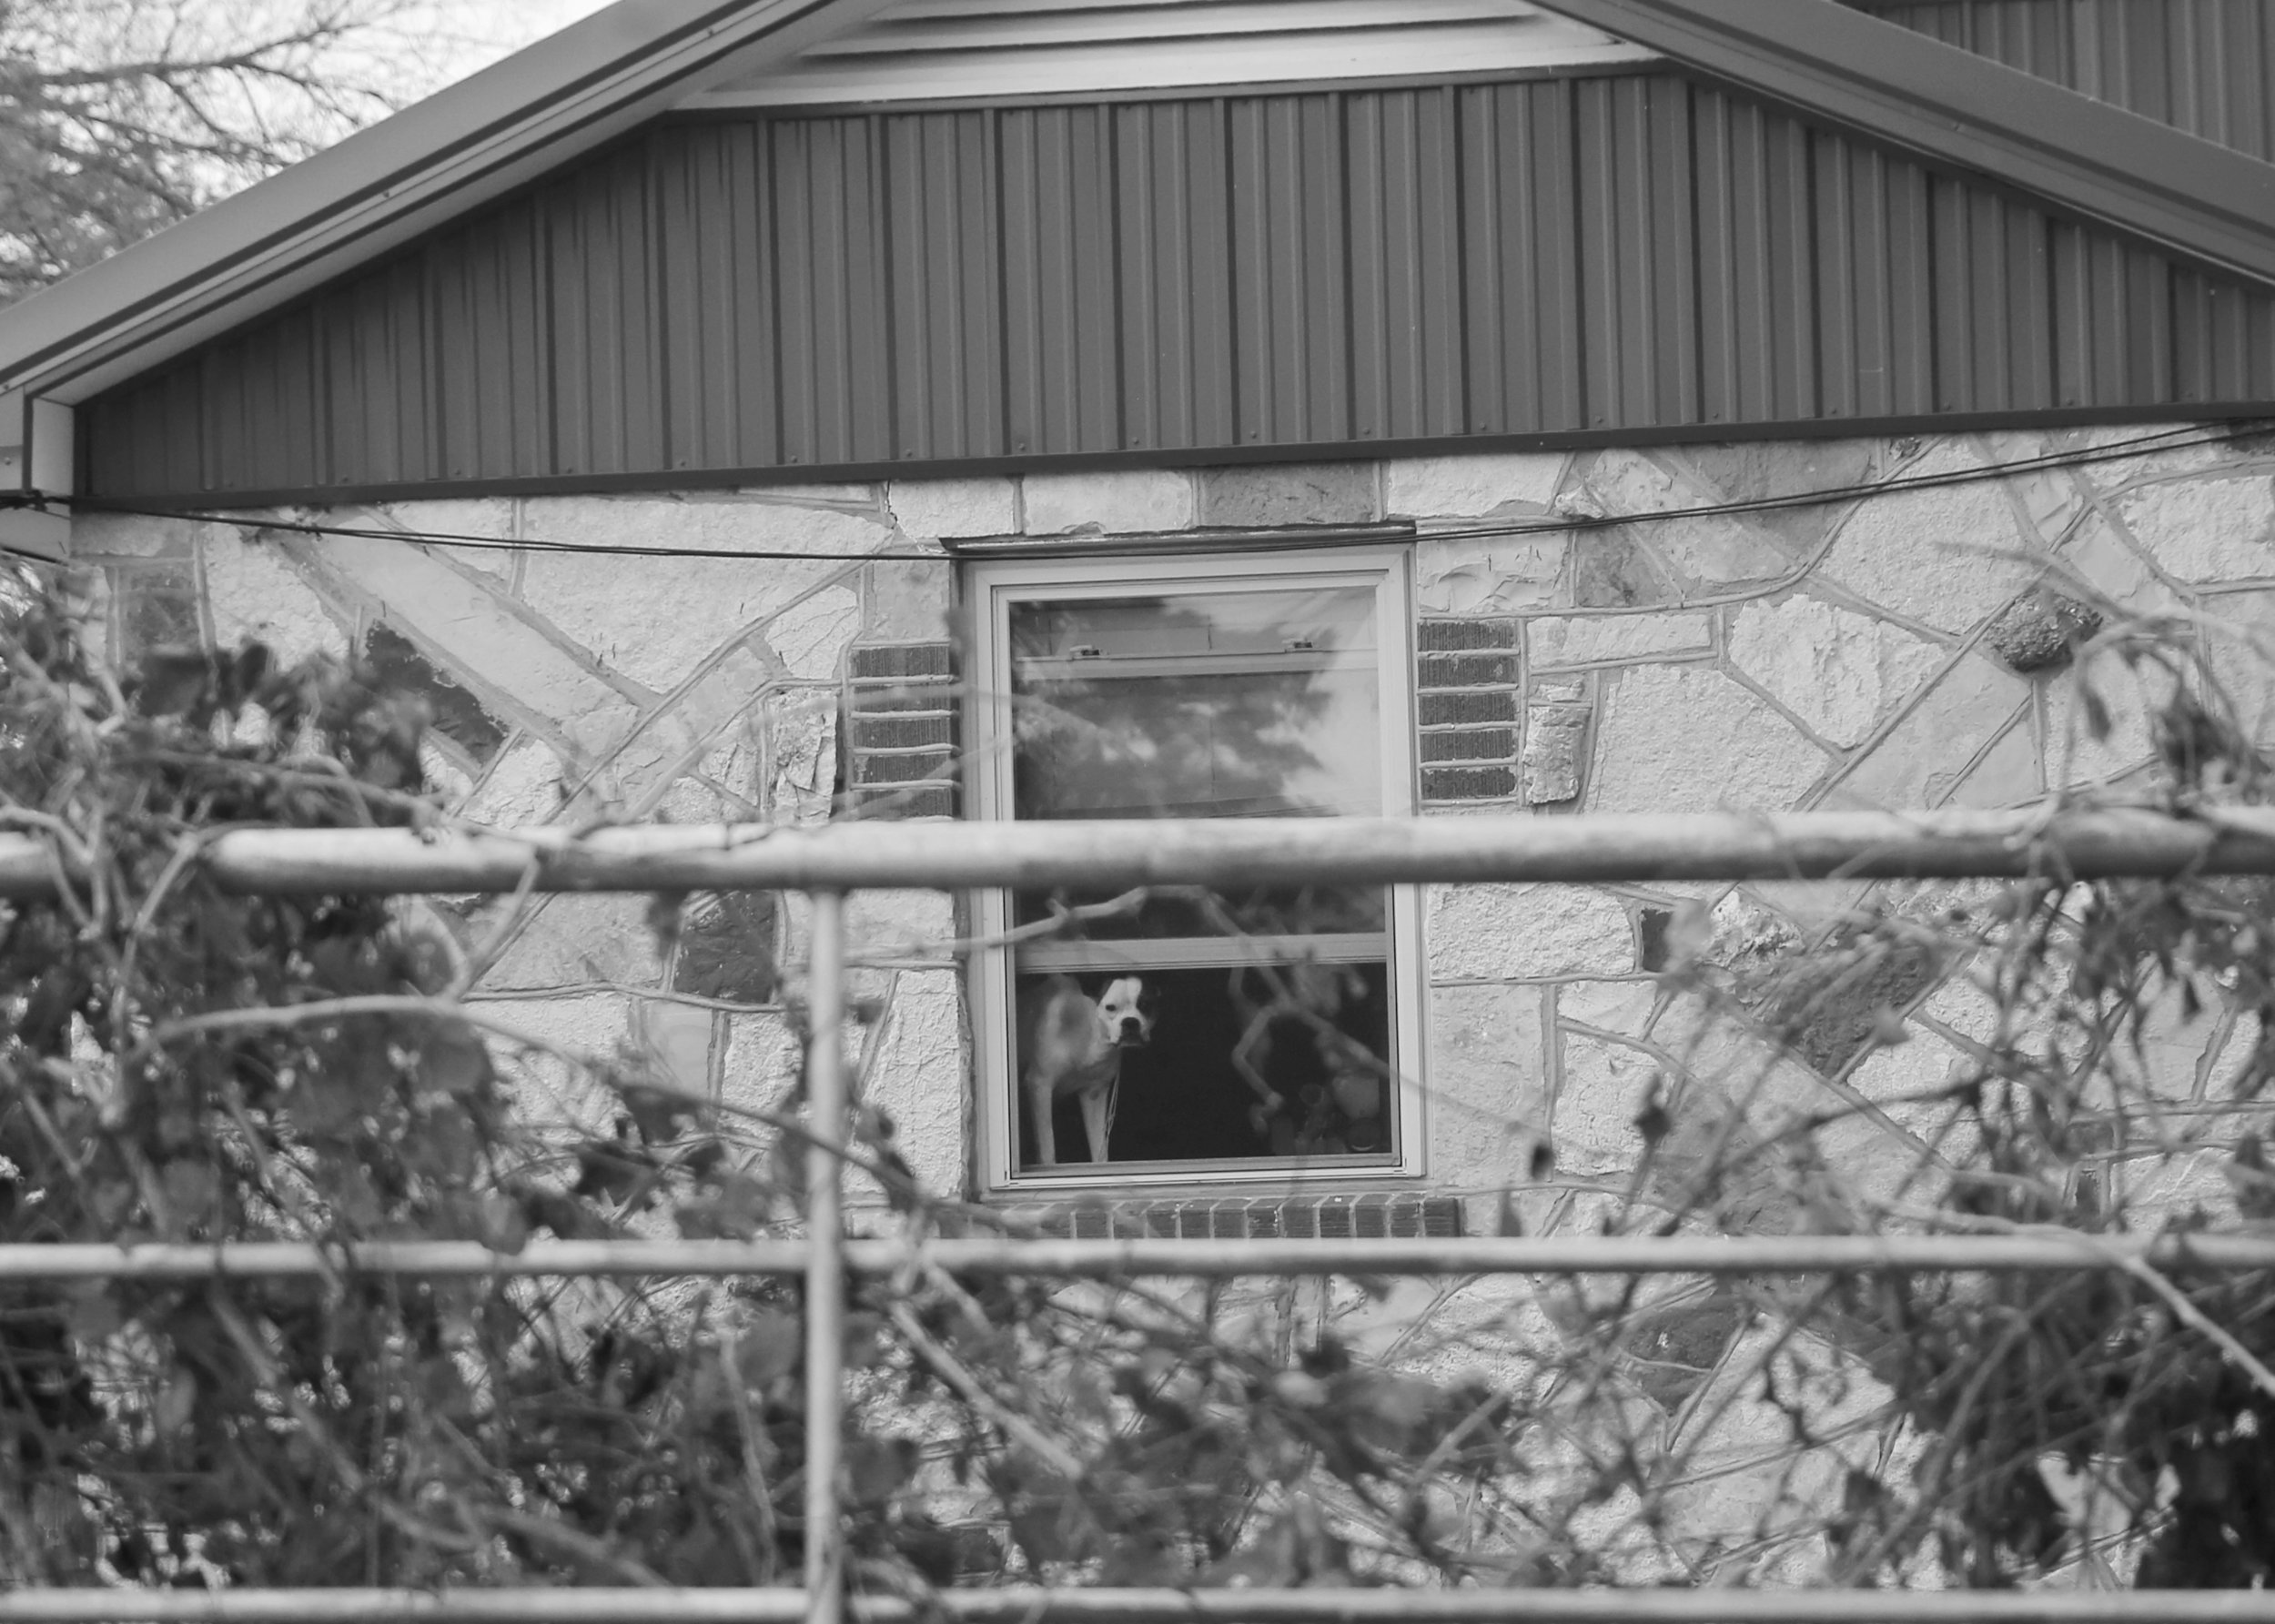 Look closely at the window ... she was keeping an eye on us during a session I had last fall!